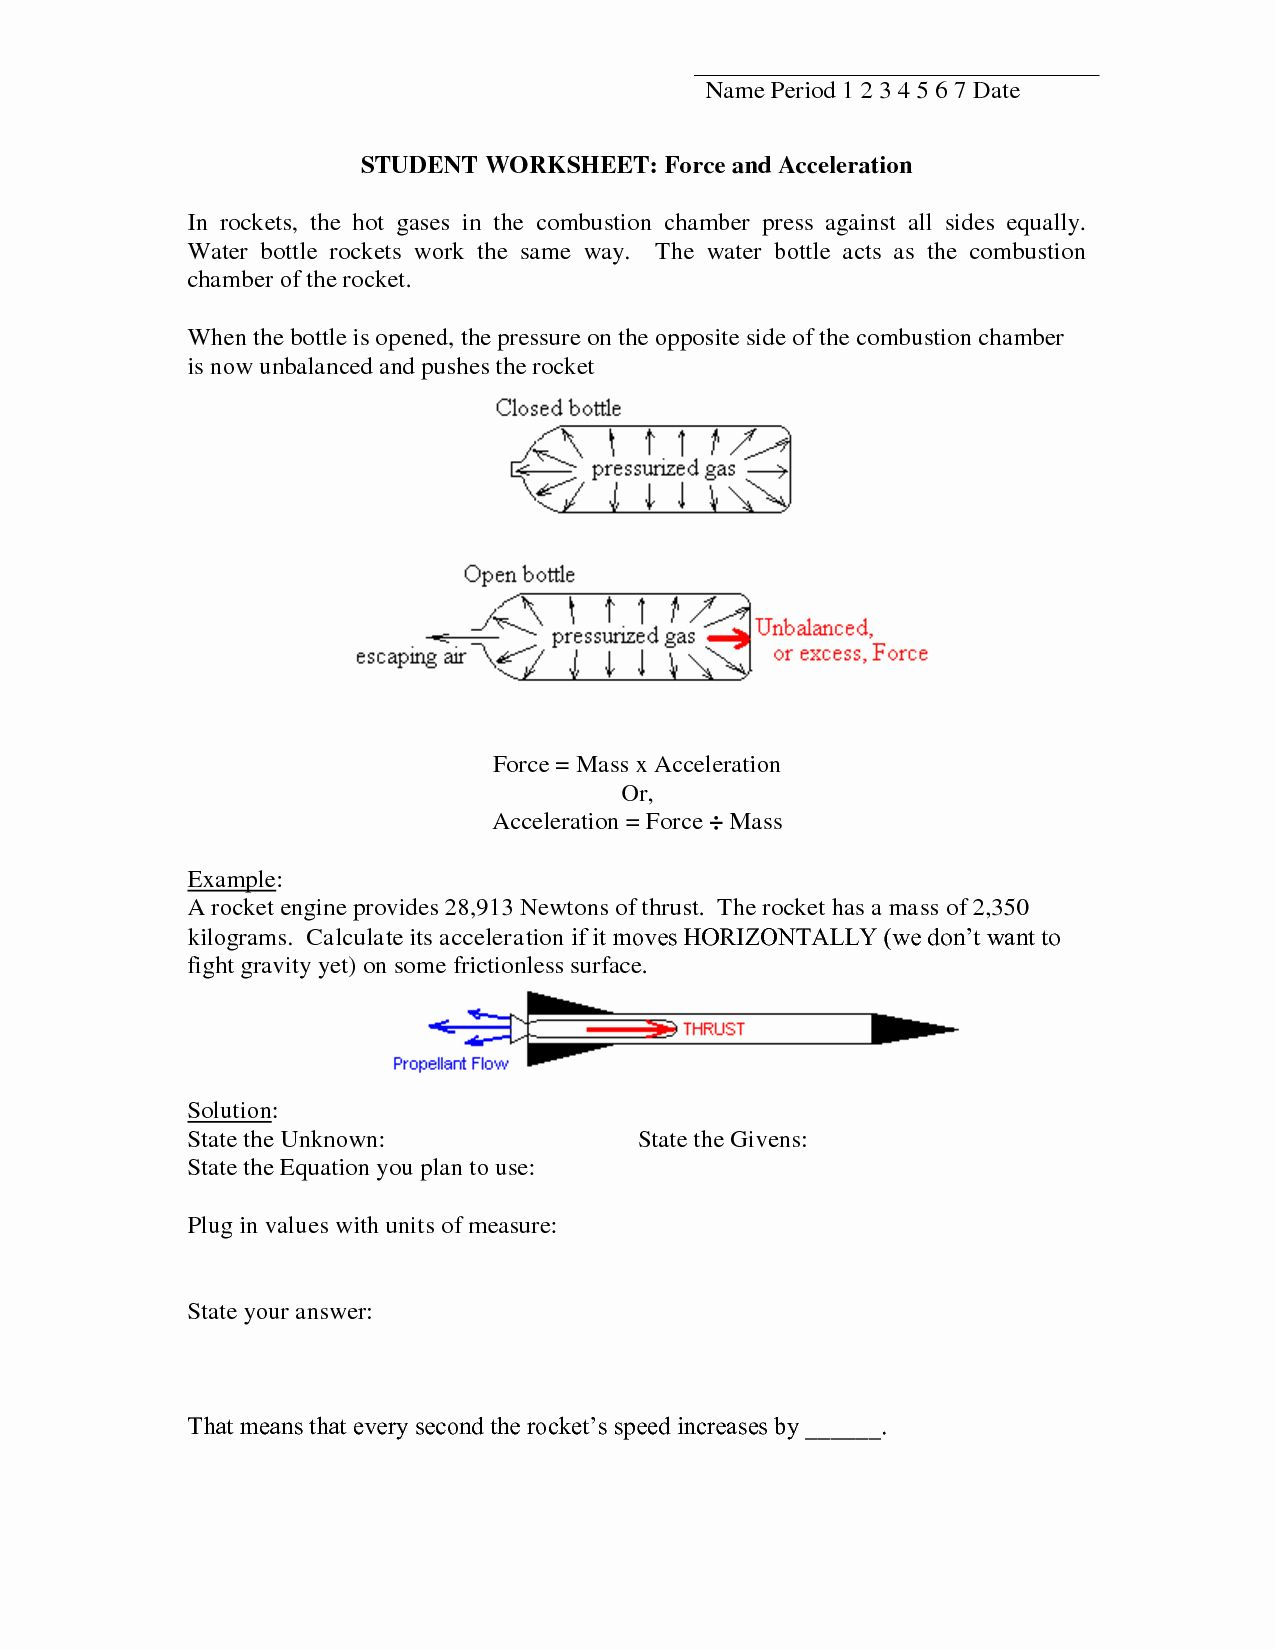 50 Velocity And Acceleration Worksheet In